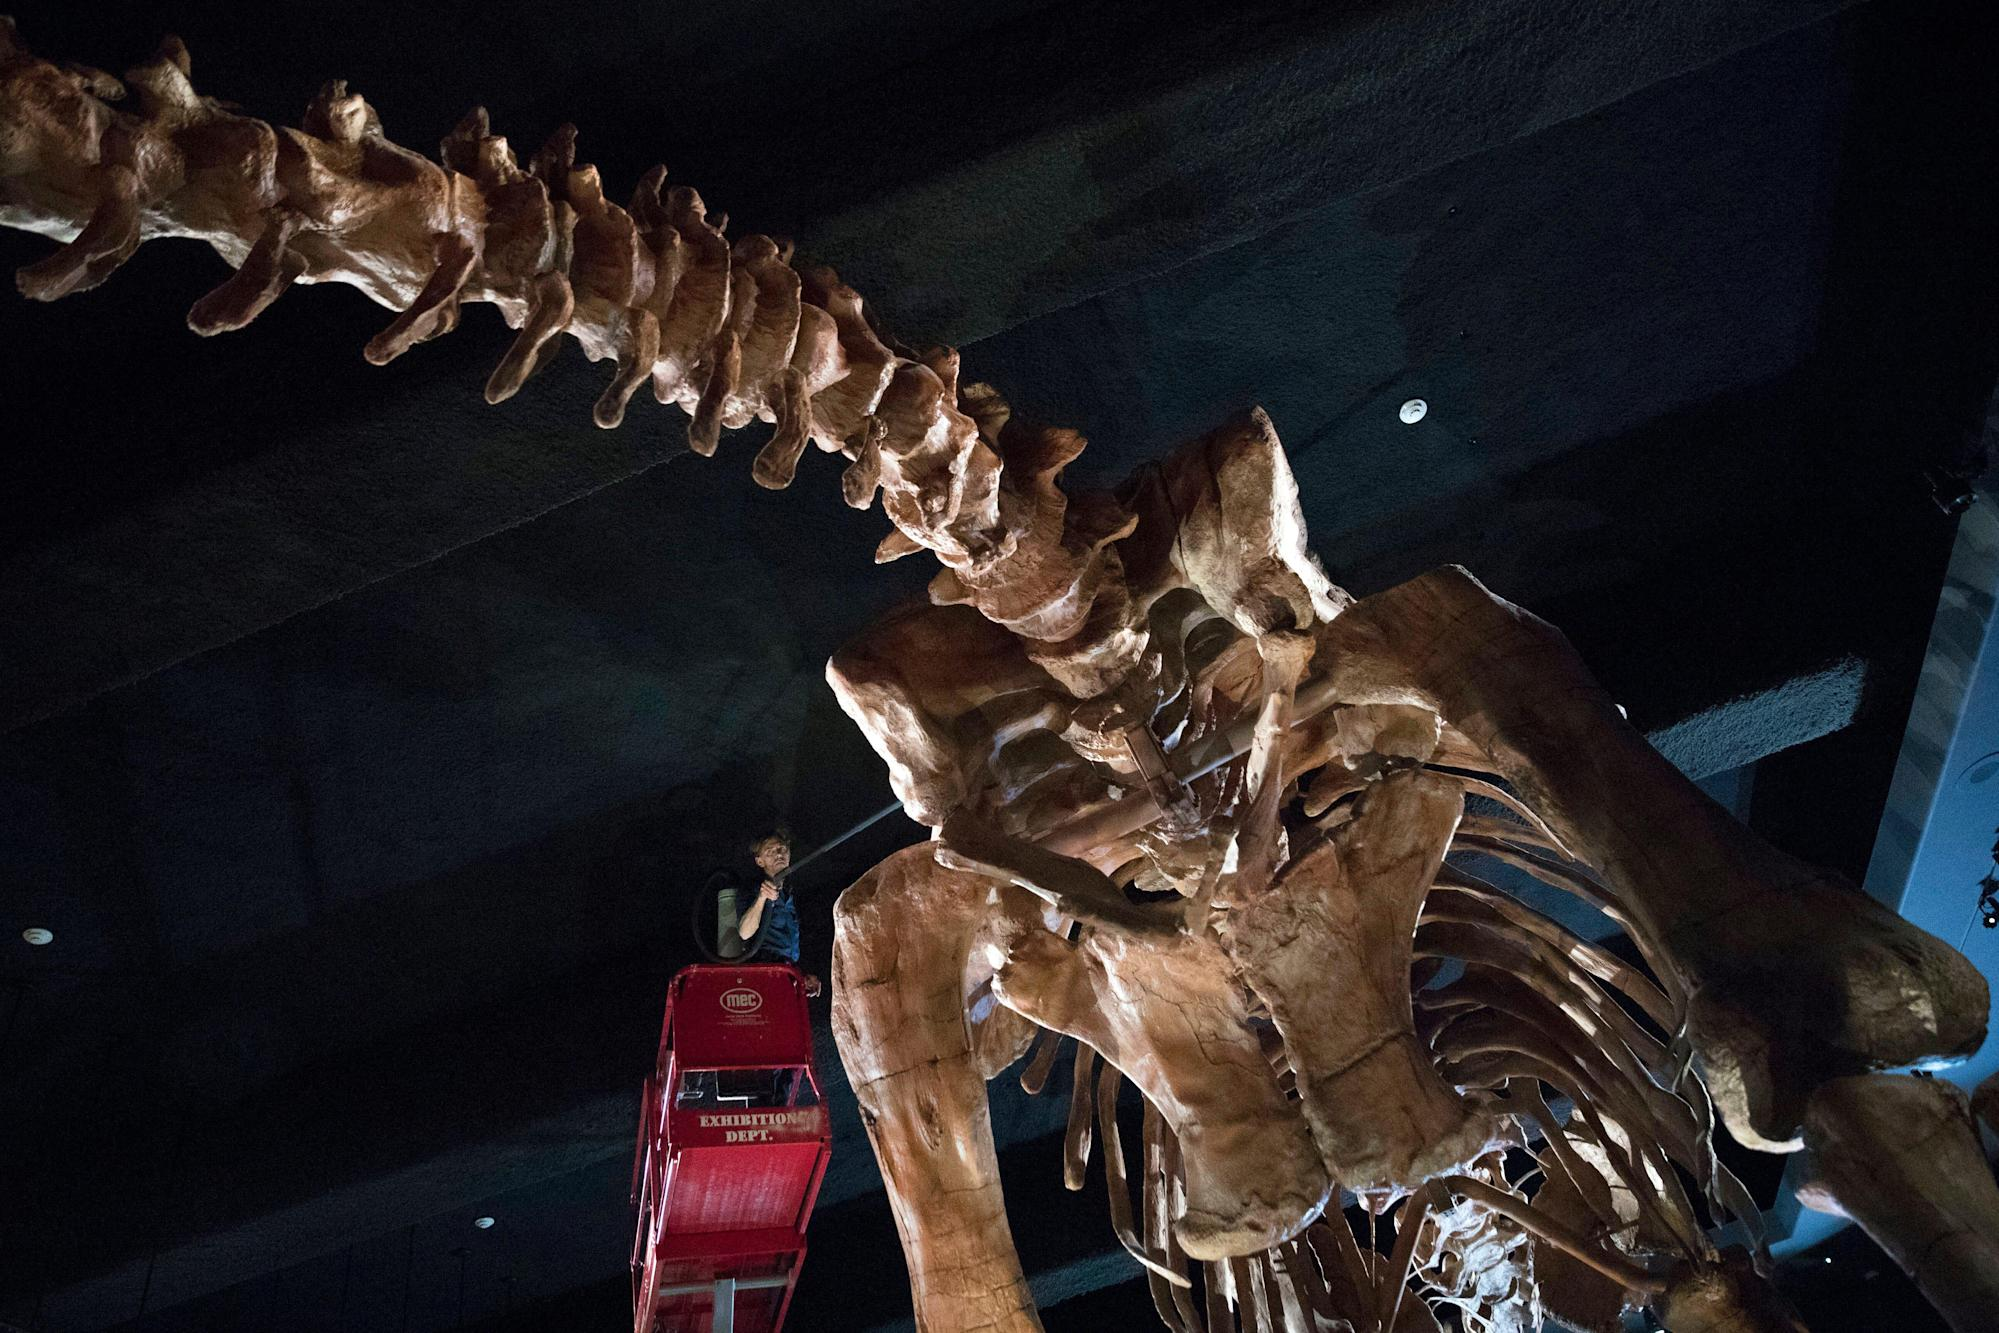 One of the largest dinosaur species in the world was discovered in Australia